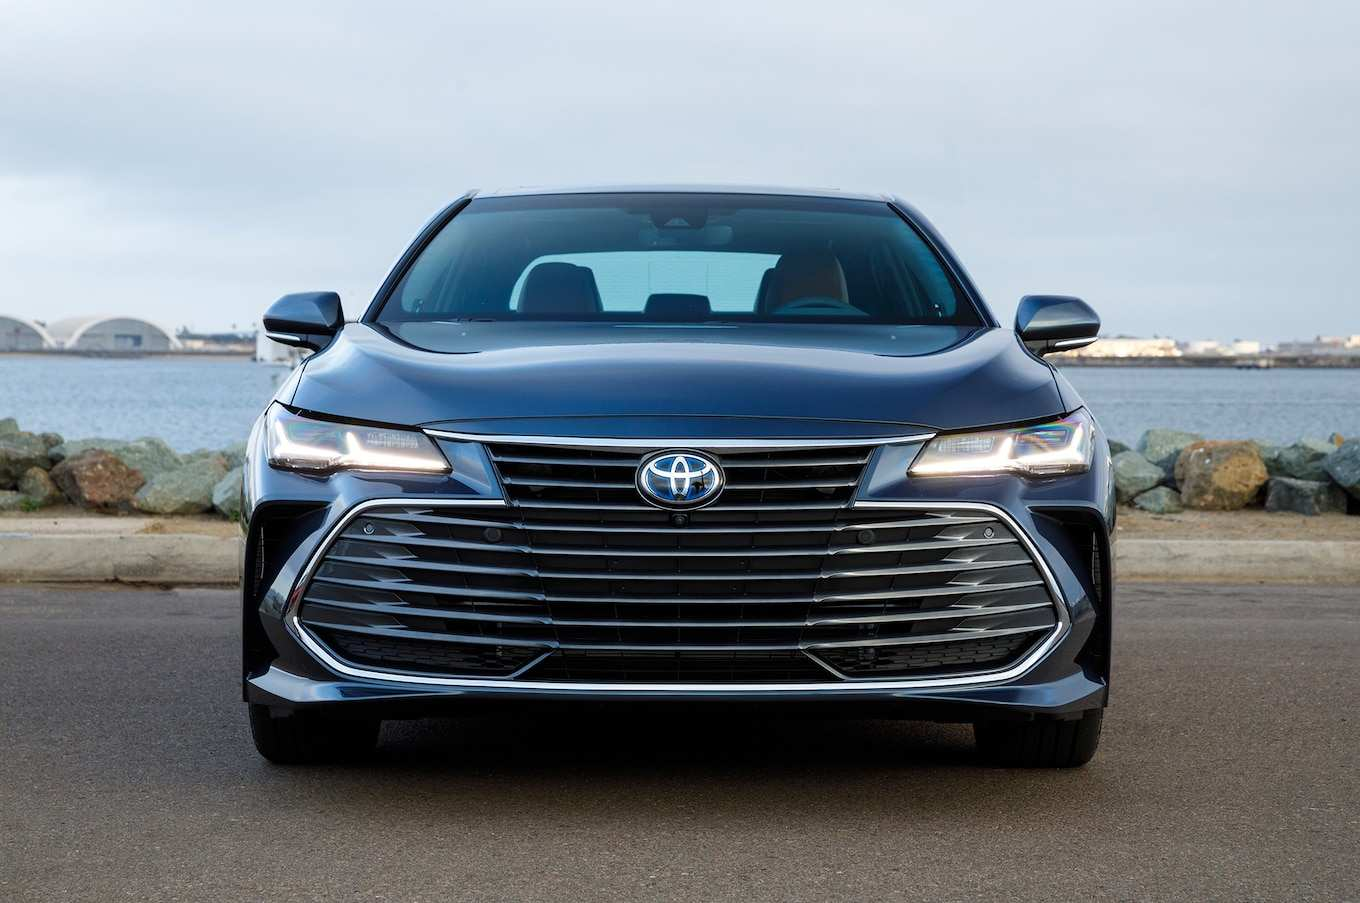 43 All New Best Avalon Toyota 2019 Interior Concept Performance for Best Avalon Toyota 2019 Interior Concept